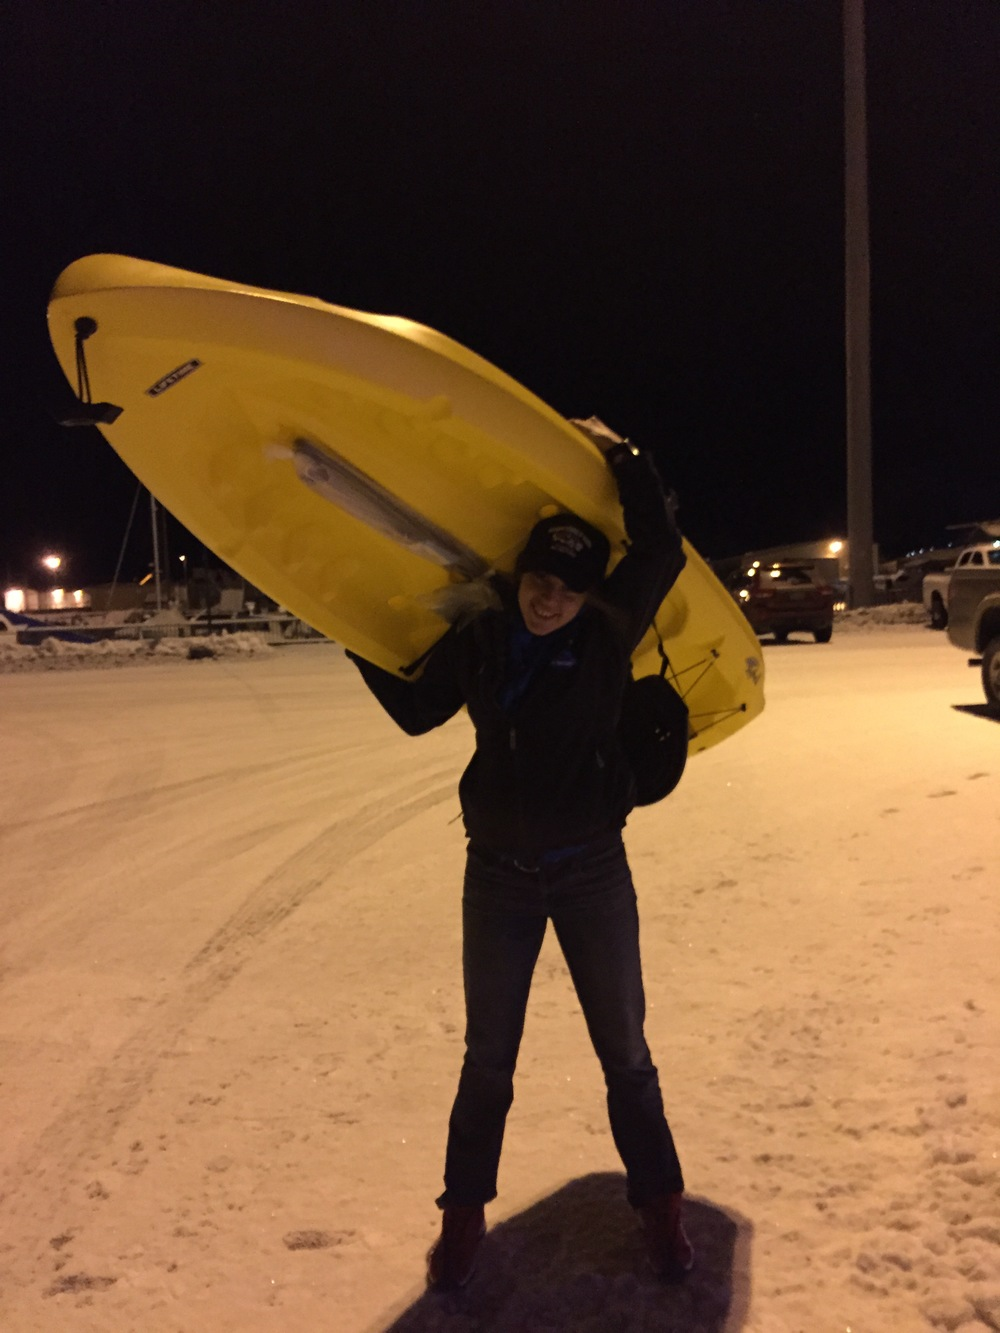 Part 3 of the Qaniq Challenge, walking the kayak home from the banquet!